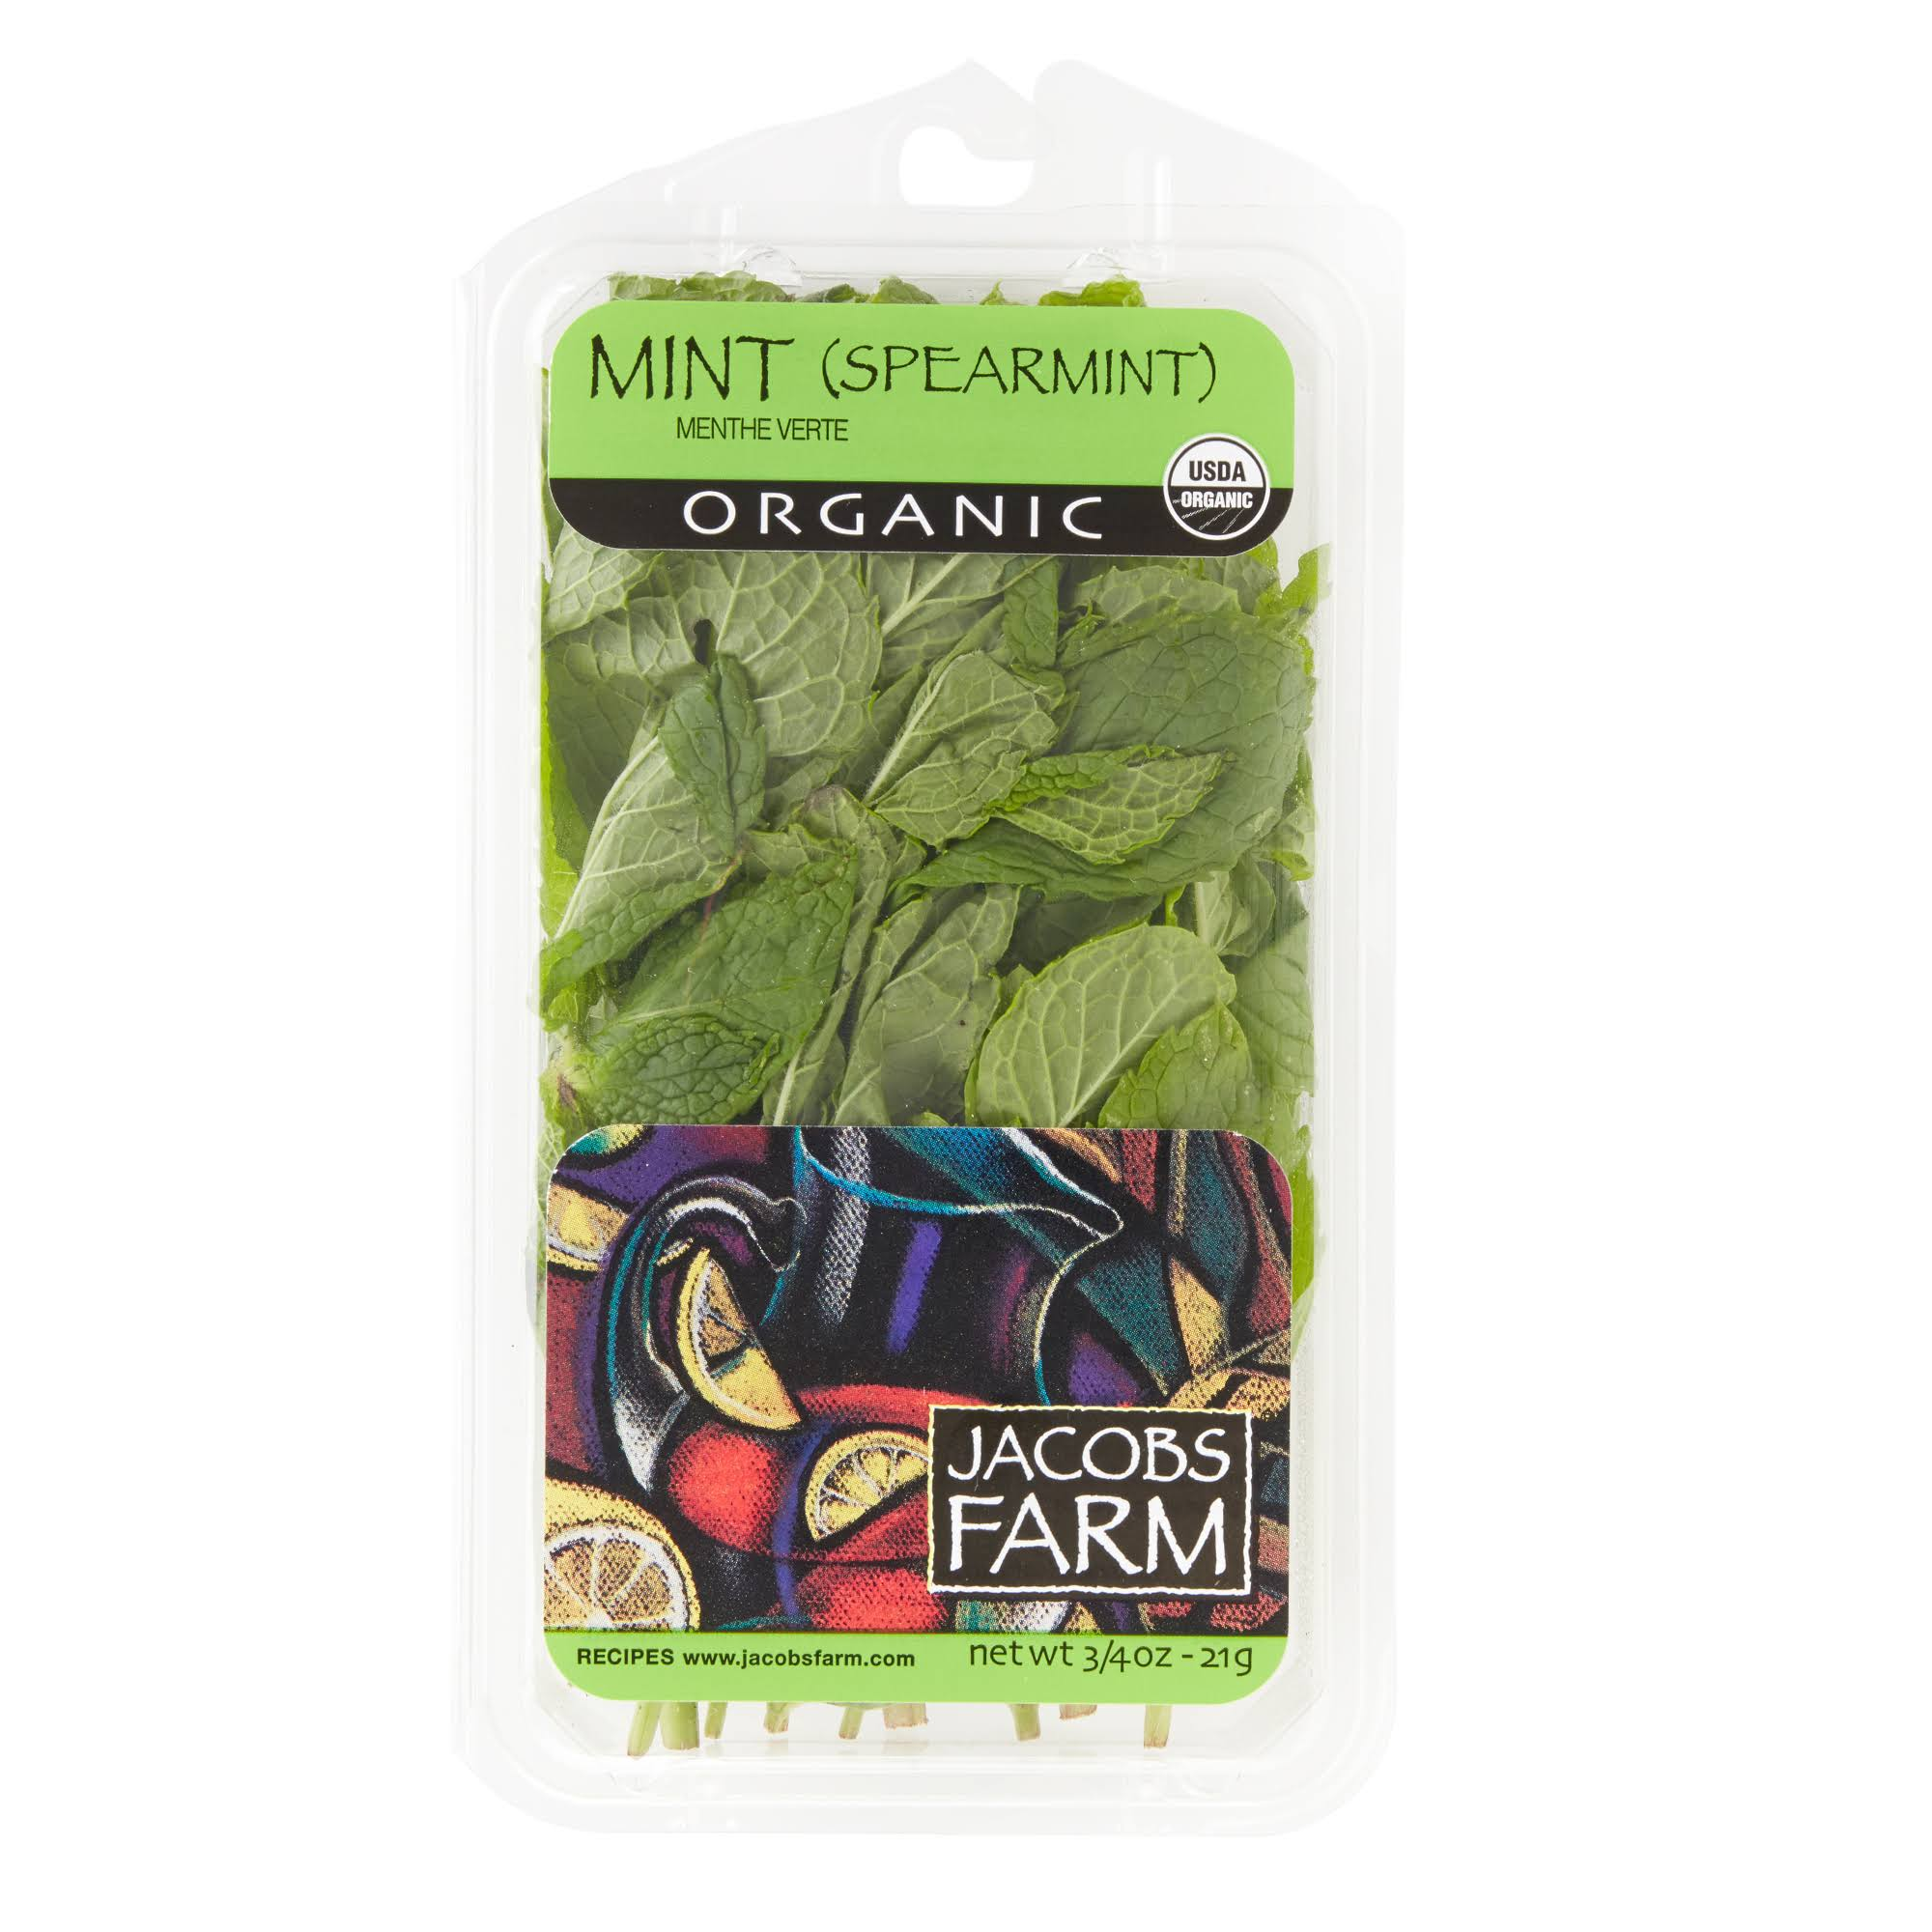 Jacobs Farm Organic Mint - 0.75 oz tray